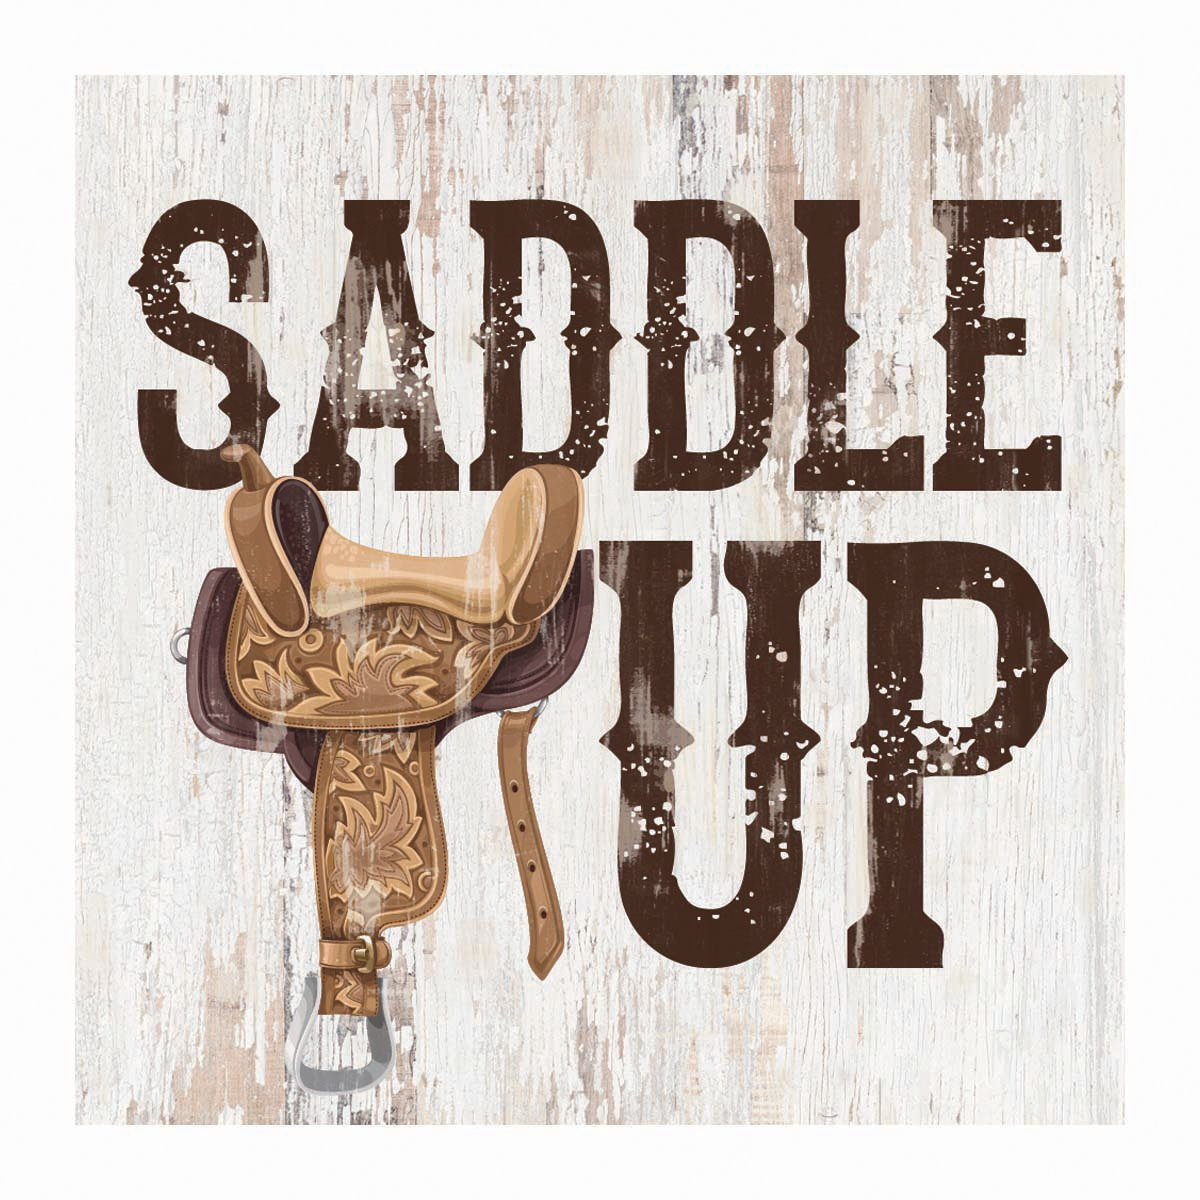 P Graham Dunn Saddle Up Rustic Whitewash 3.5 x 3.5 Inch Pine Wood Tabletop Block Sign